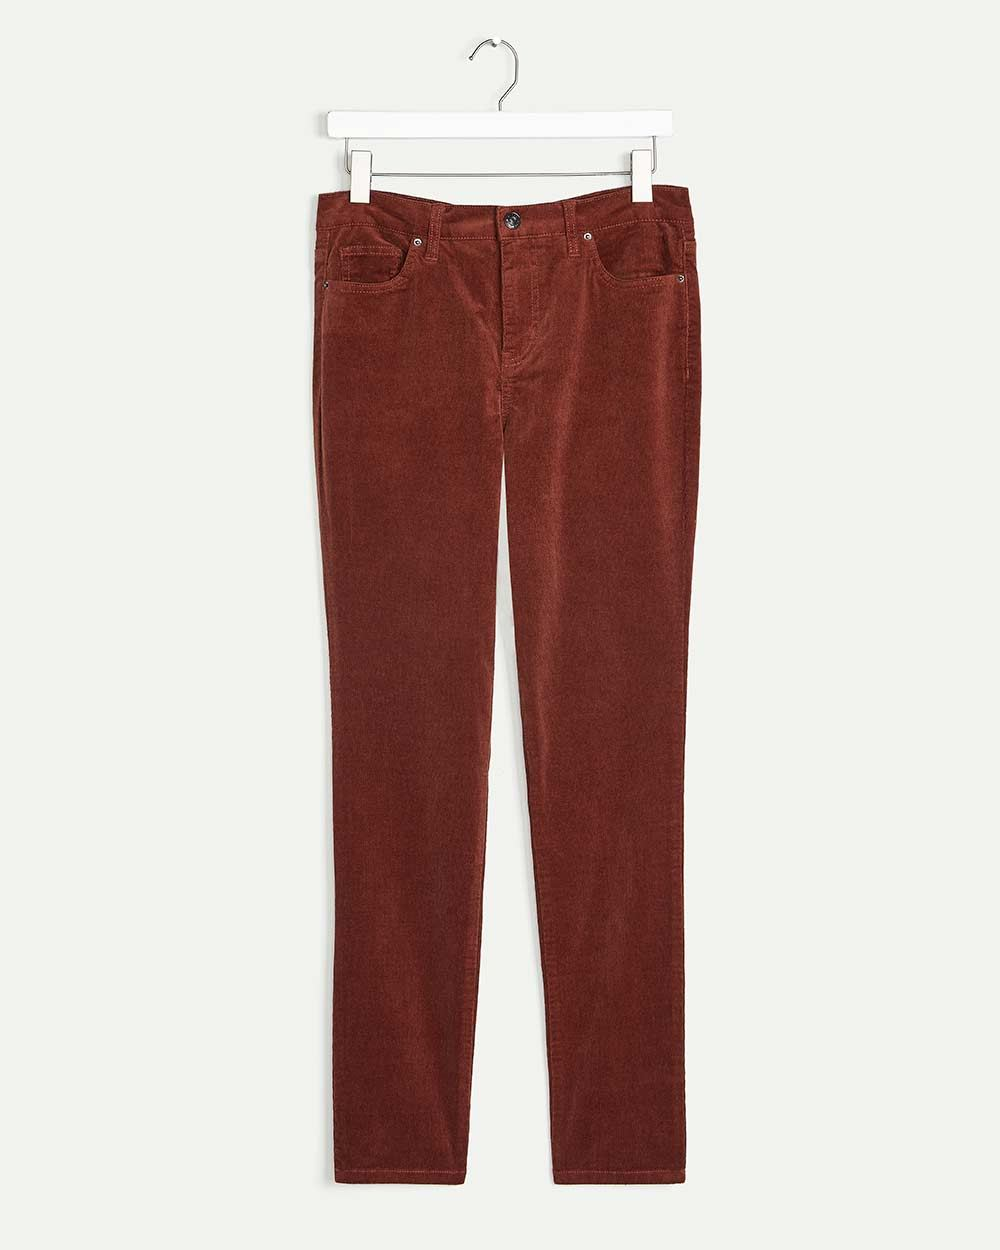 High Rise Corduroy Skinny Pants